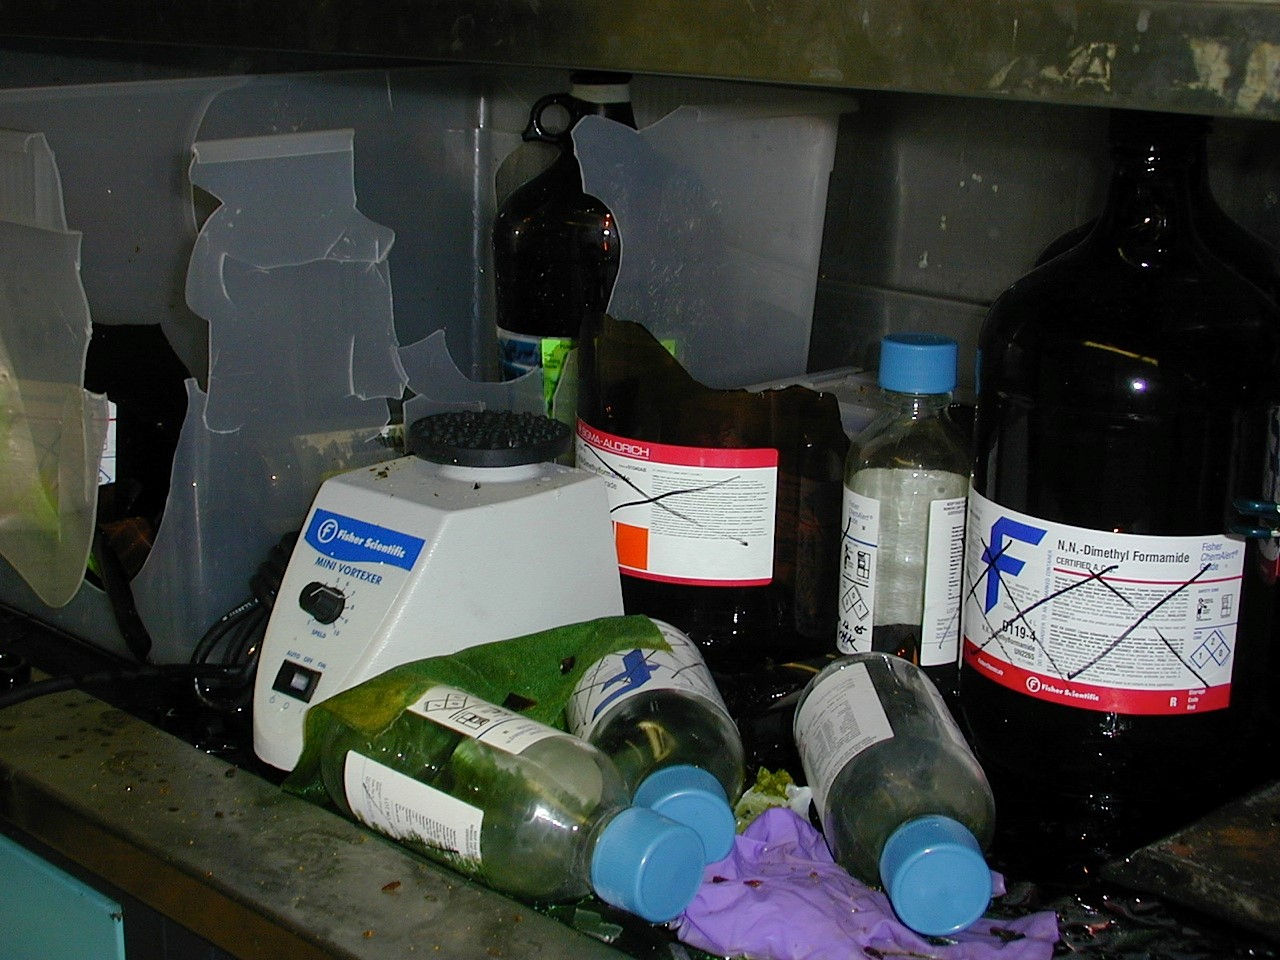 Aftermath of ruptured glass piranha bottle in fume hood